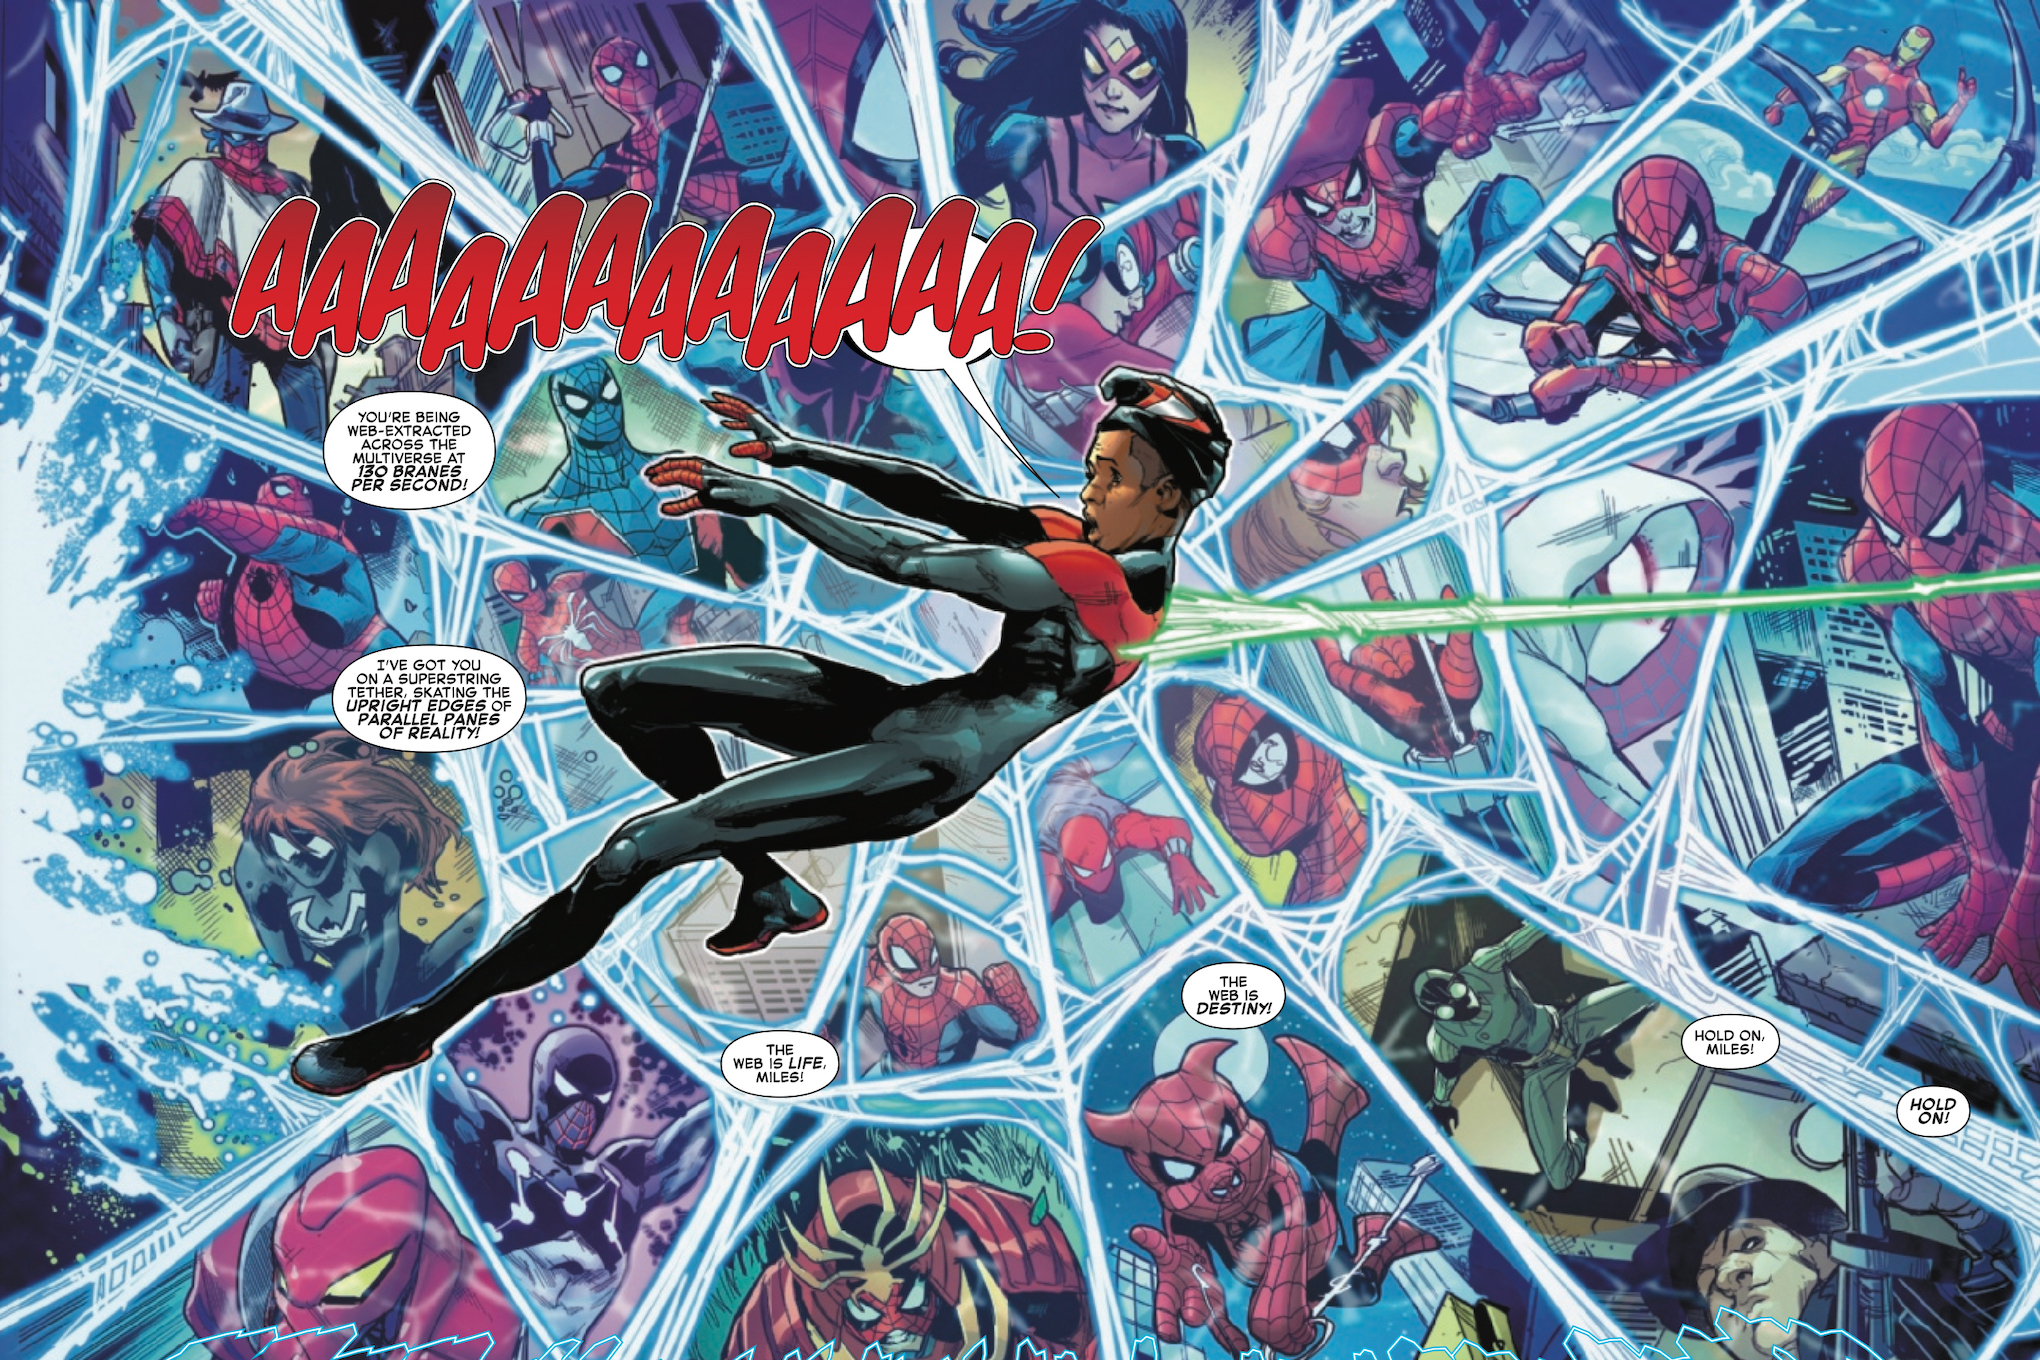 Here's why Miles Morales is swinging through the Spider-Verse again